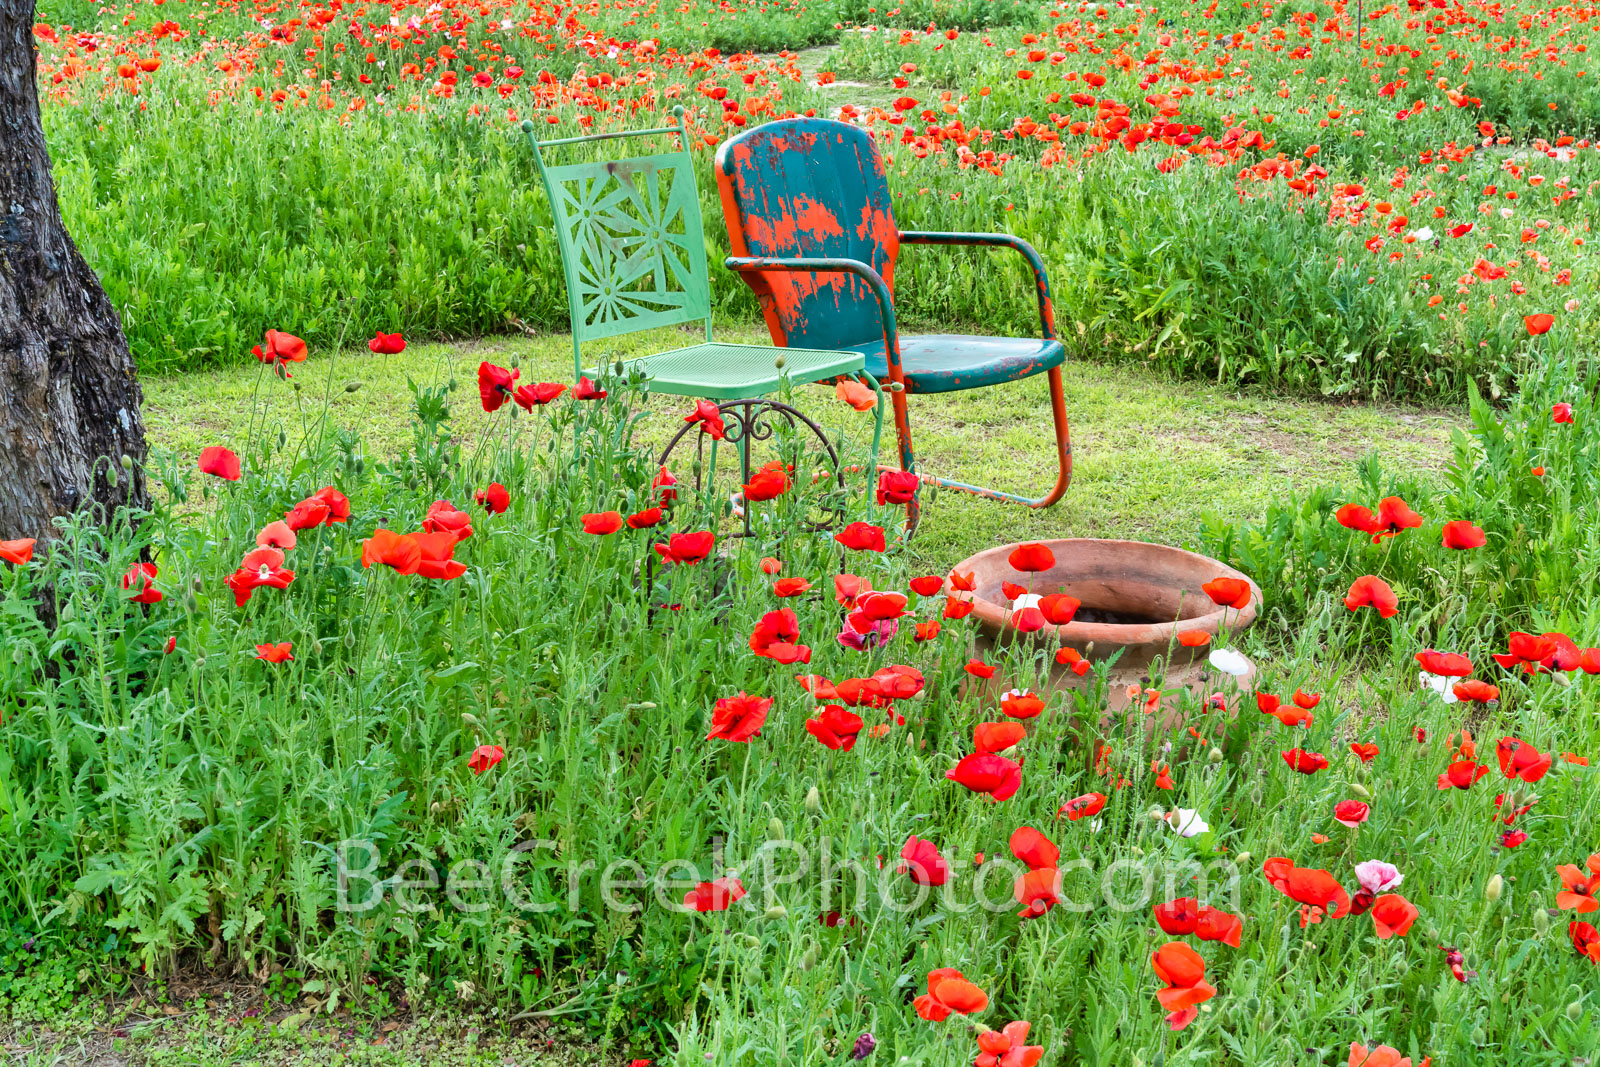 Relaxing in the Poppies - We like the way this person created a nice sitting spot to enjoy the poppies in his garden.  He created...